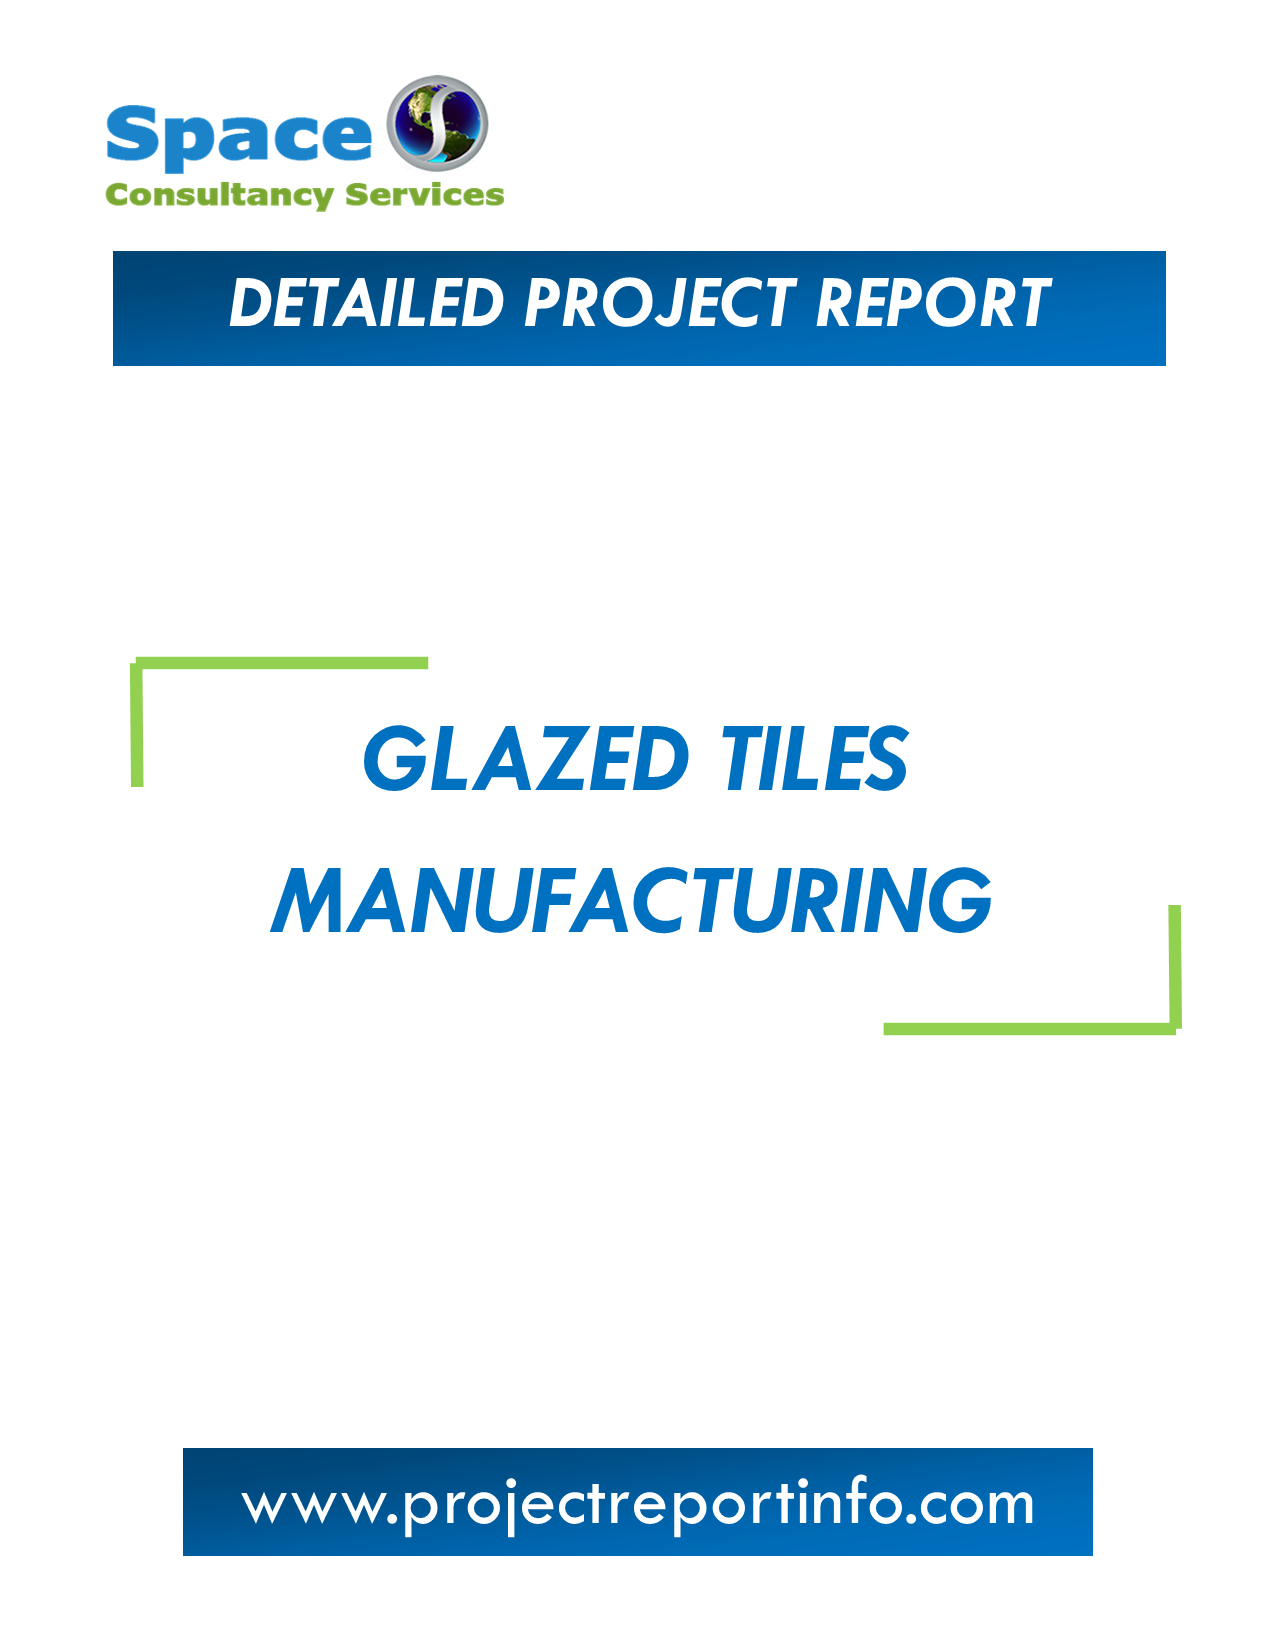 Project Report on Glazed Tiles Manufacturing